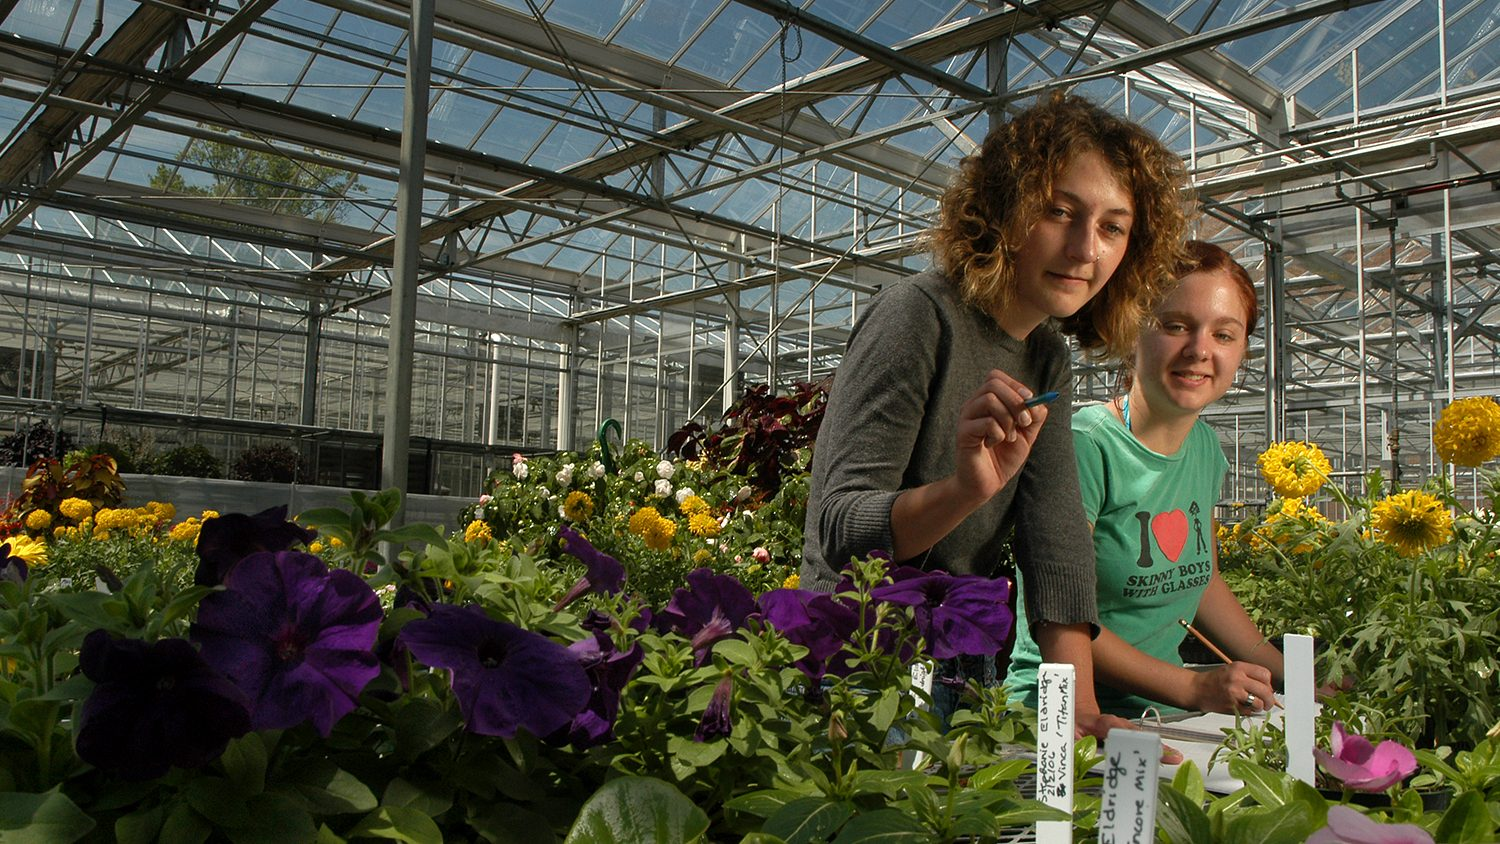 Faculty member with student in greenhouse.